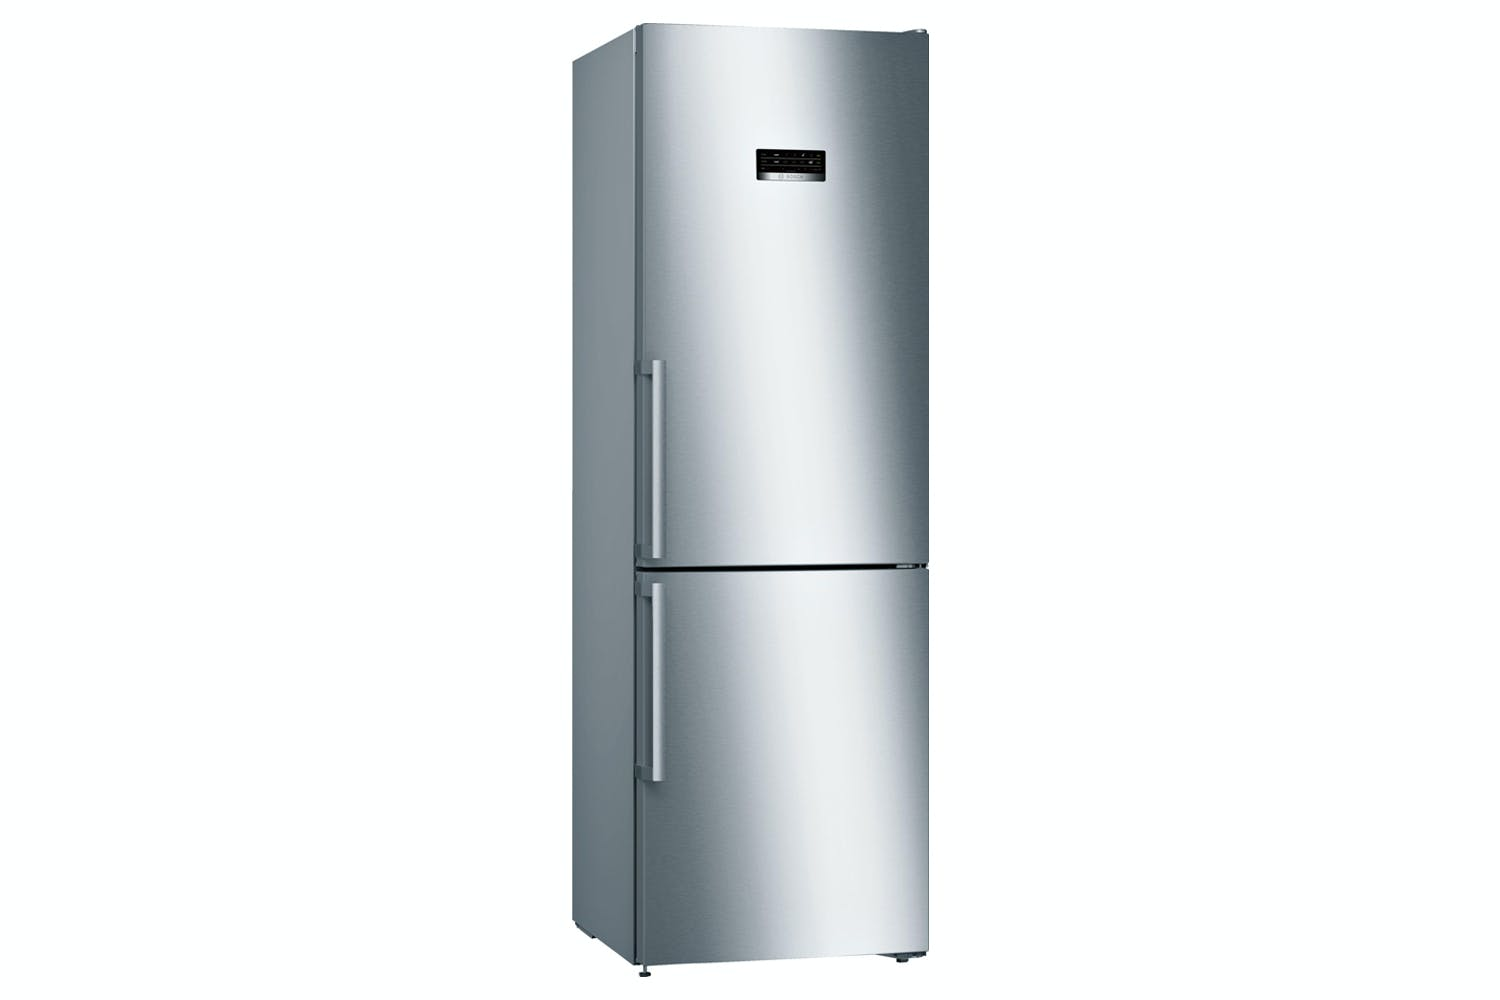 bosch serie 4 freestanding fridge freezer kgn36xi35g. Black Bedroom Furniture Sets. Home Design Ideas